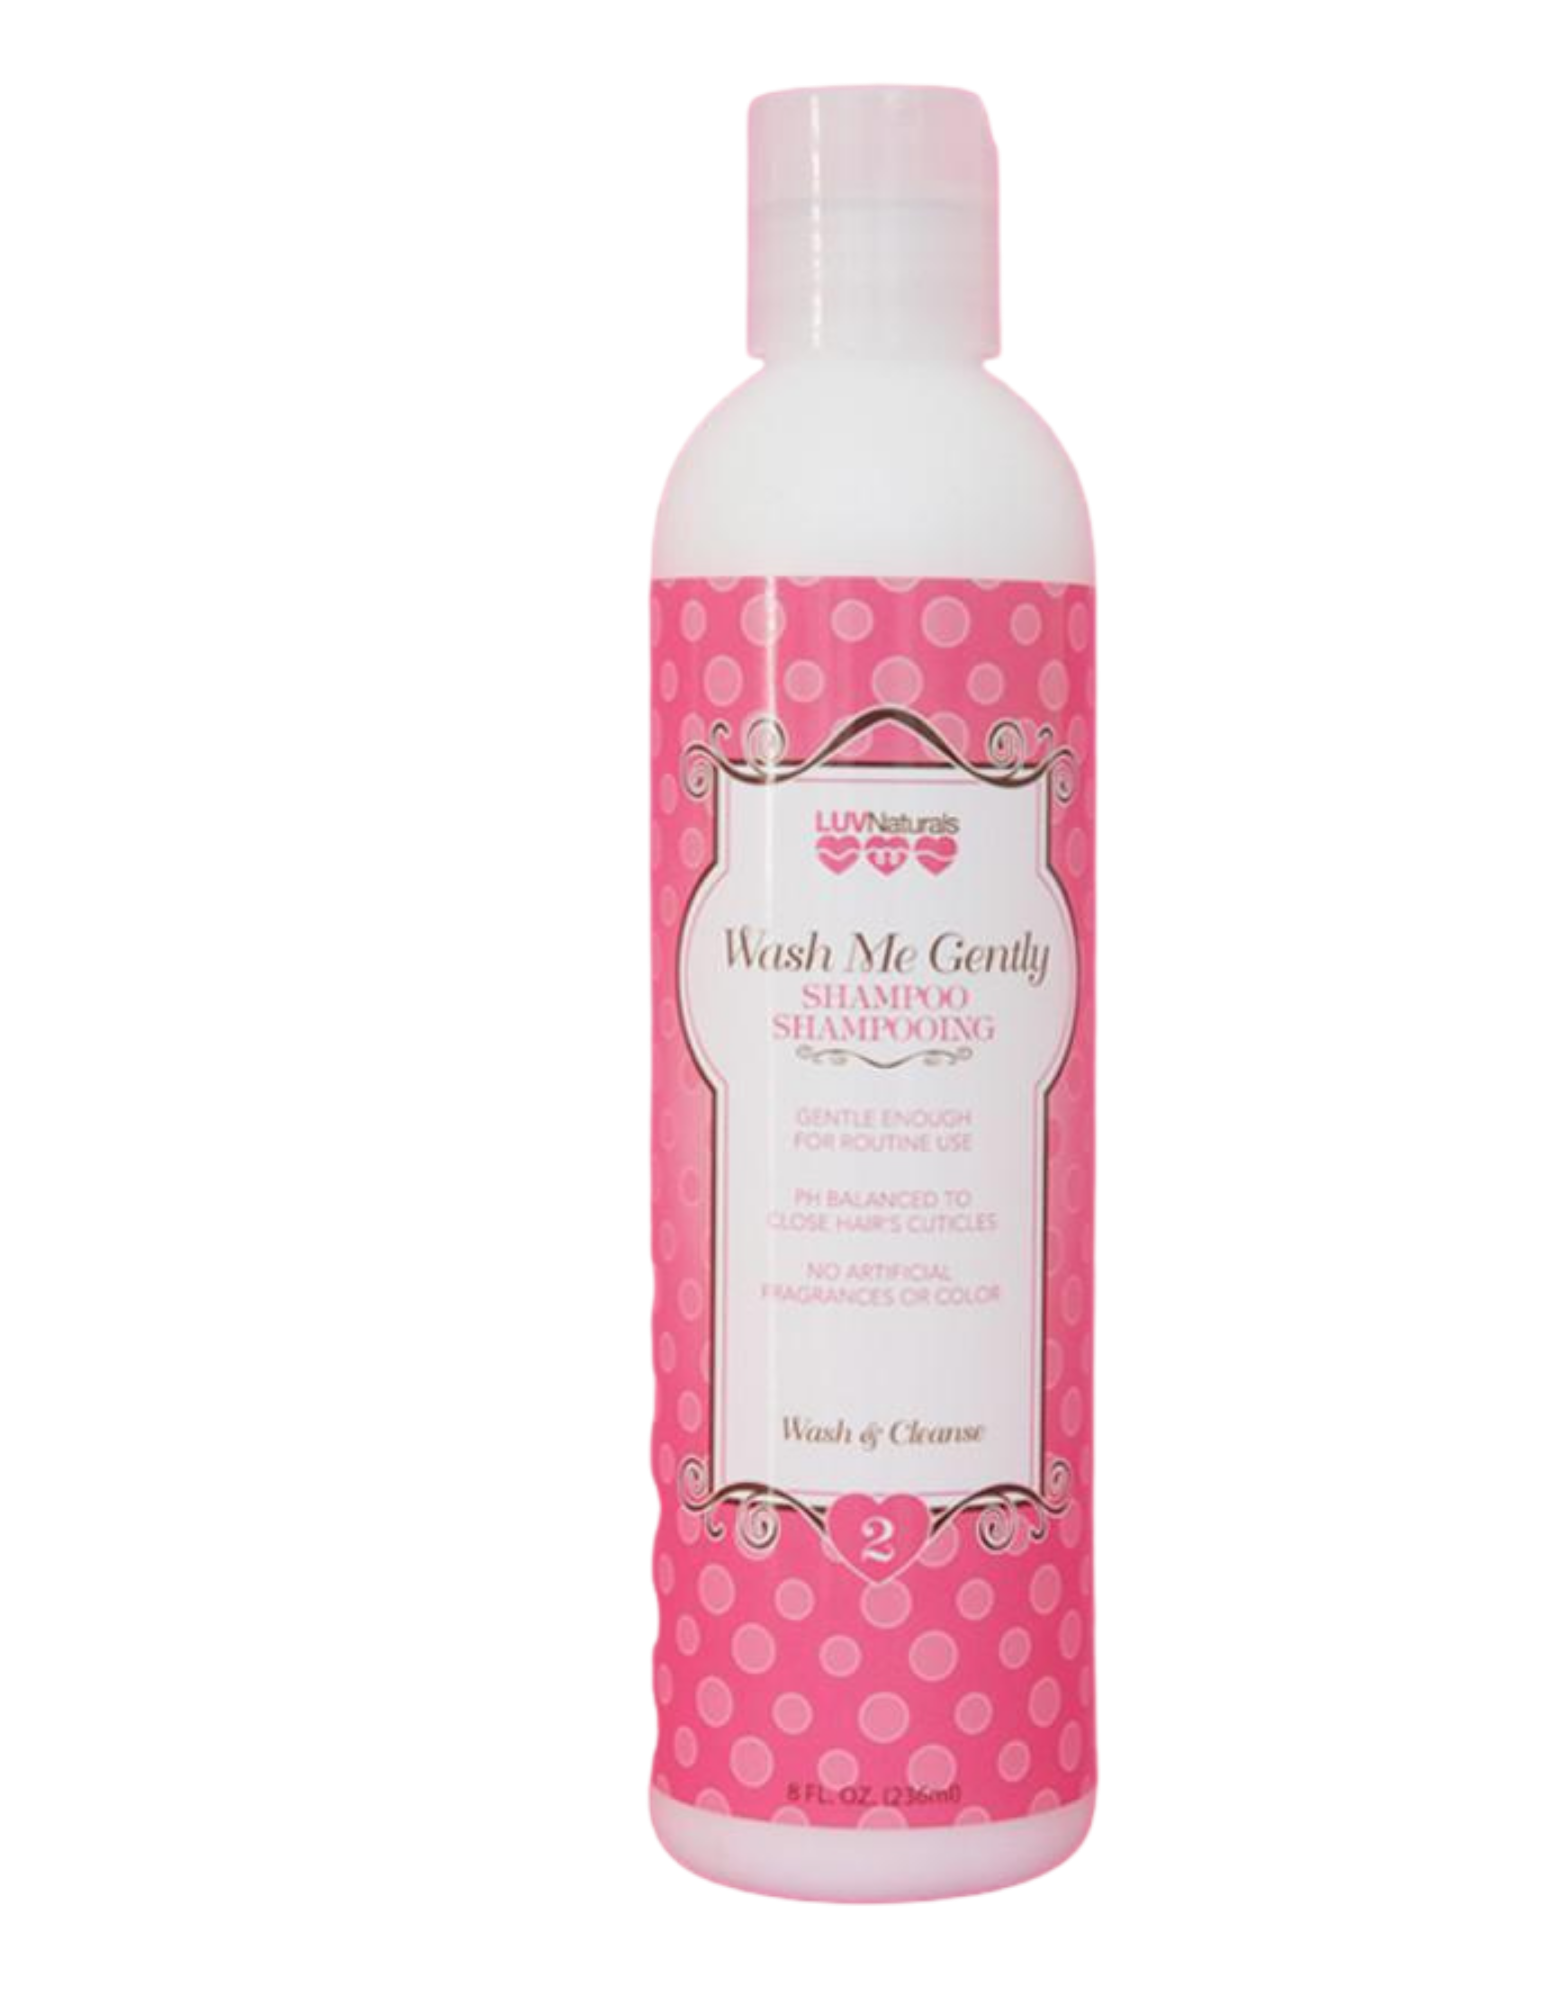 LuvNaturals Wash Me Gently Shampoo 8oz - Product Junkie DC